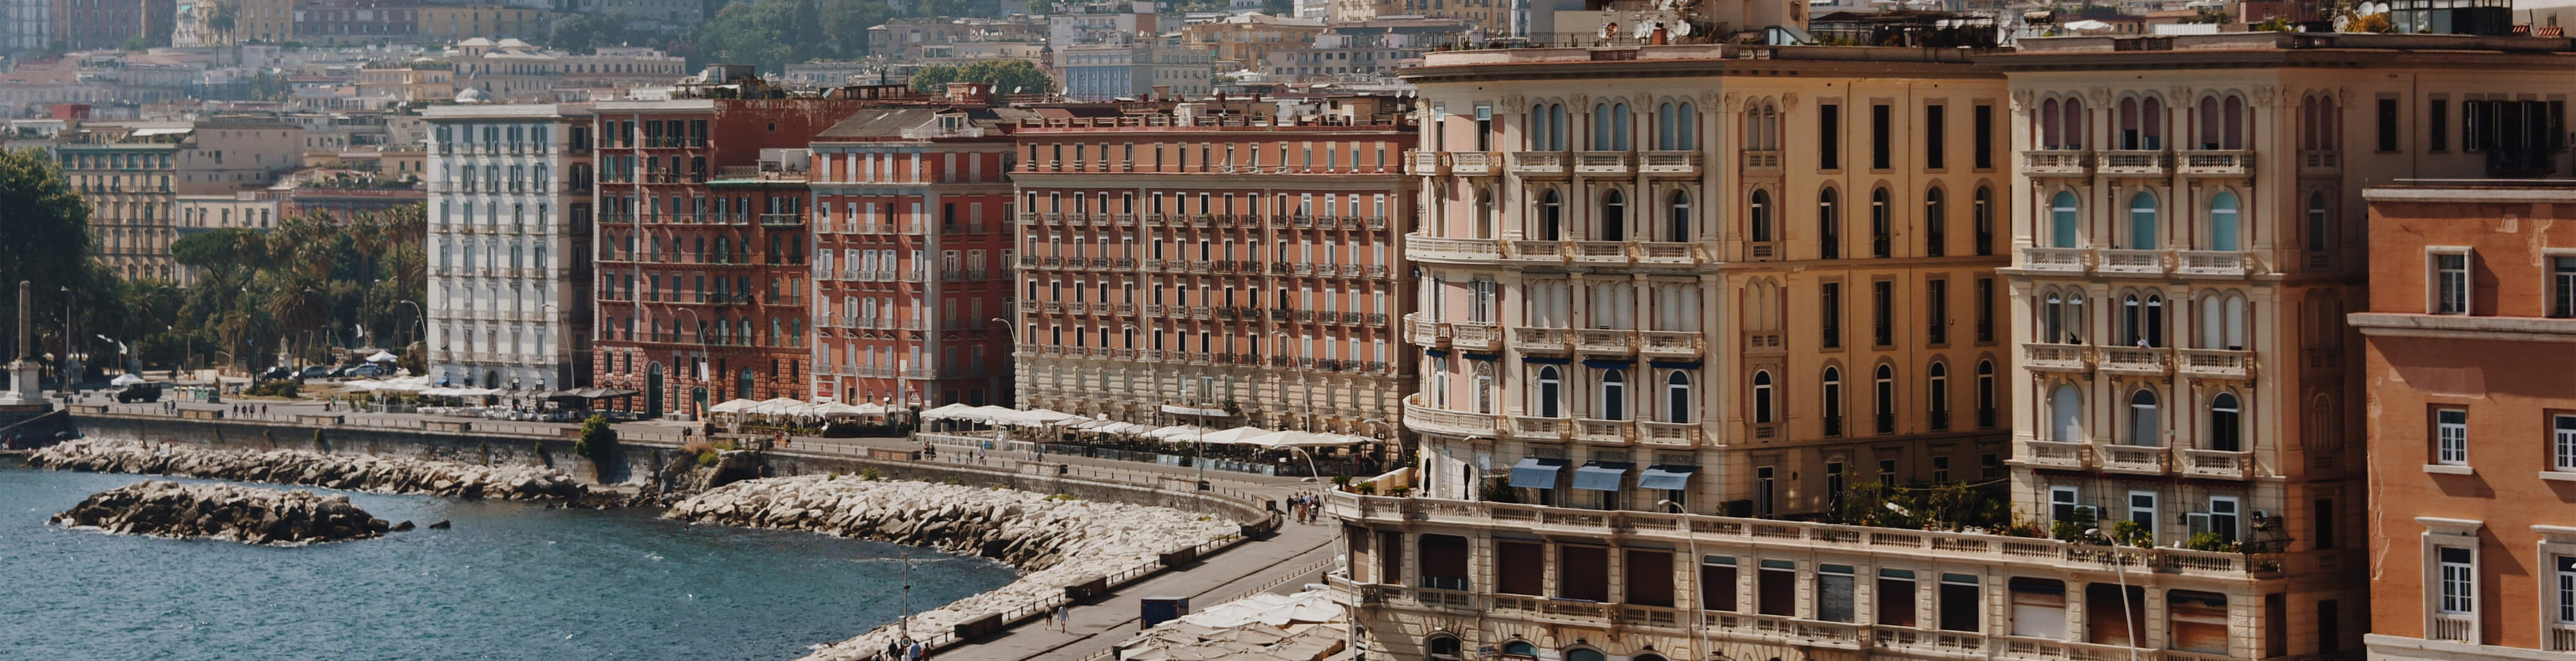 Online Training Courses In Naples